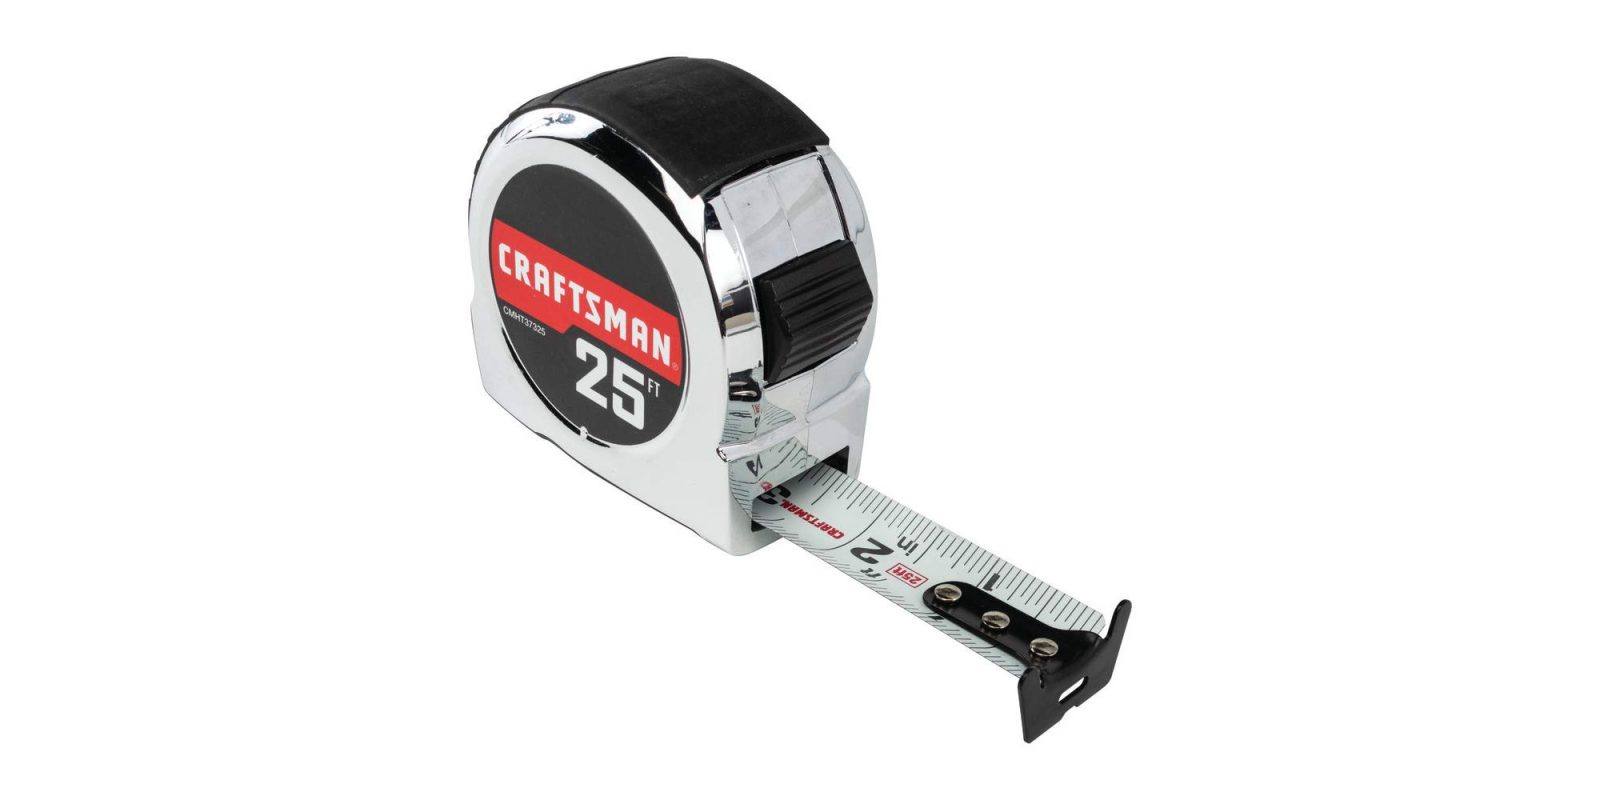 Hurry! Amazon has CRAFTSMAN's 25-ft. Tape Measure priced at $4 (Save 55%)